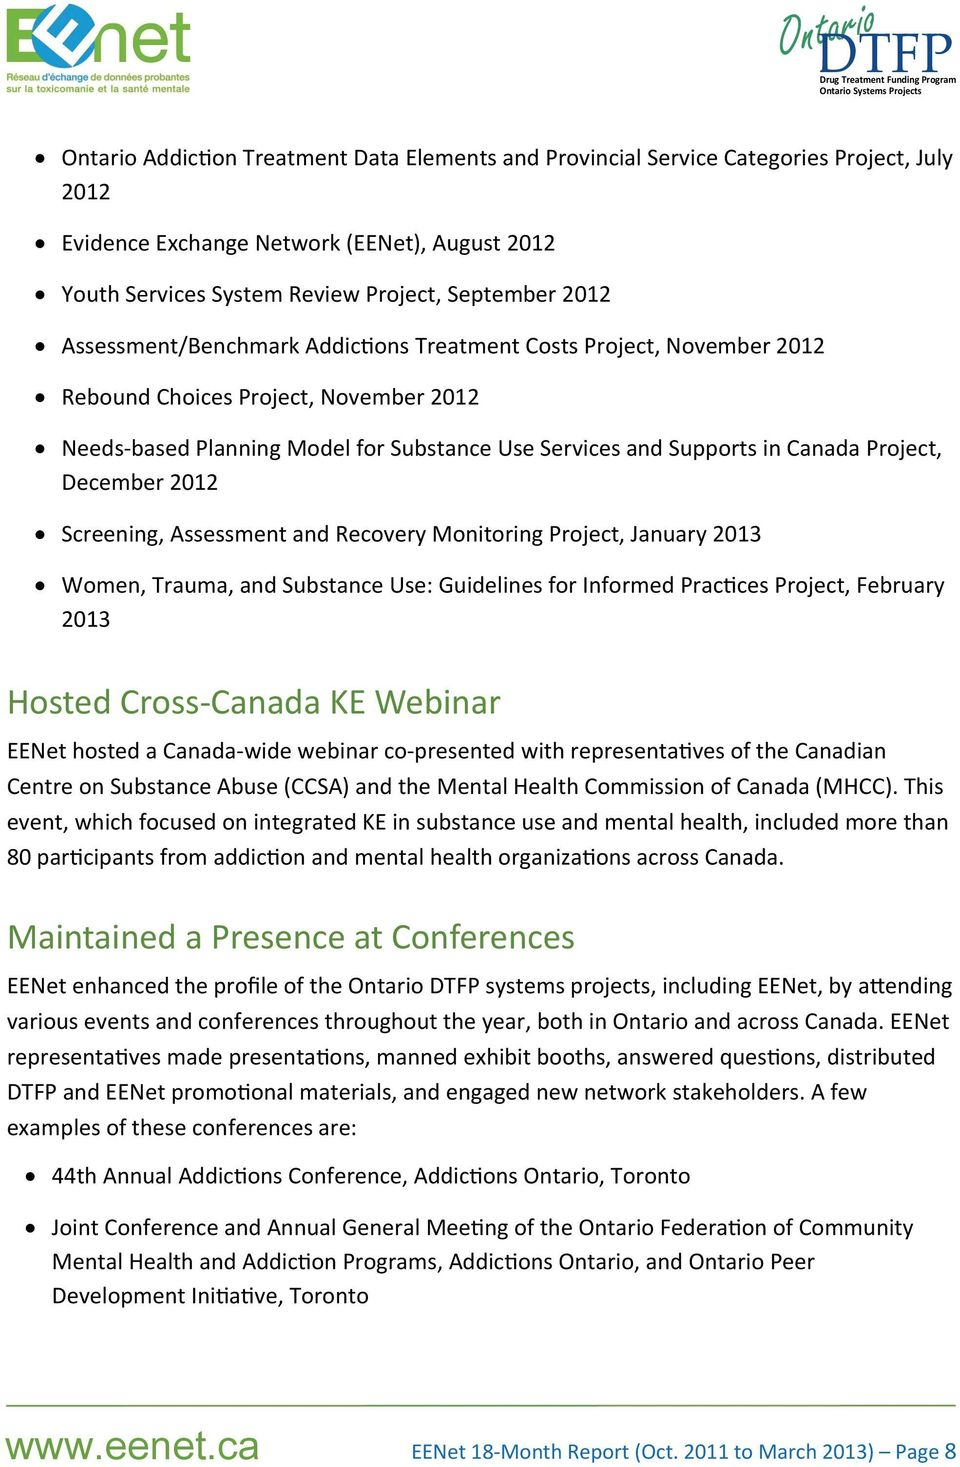 December 2012 Screening, Assessment and Recovery Monitoring Project, January 2013 Women, Trauma, and Substance Use: Guidelines for Informed Prac ces Project, February 2013 Hosted Cross Canada KE